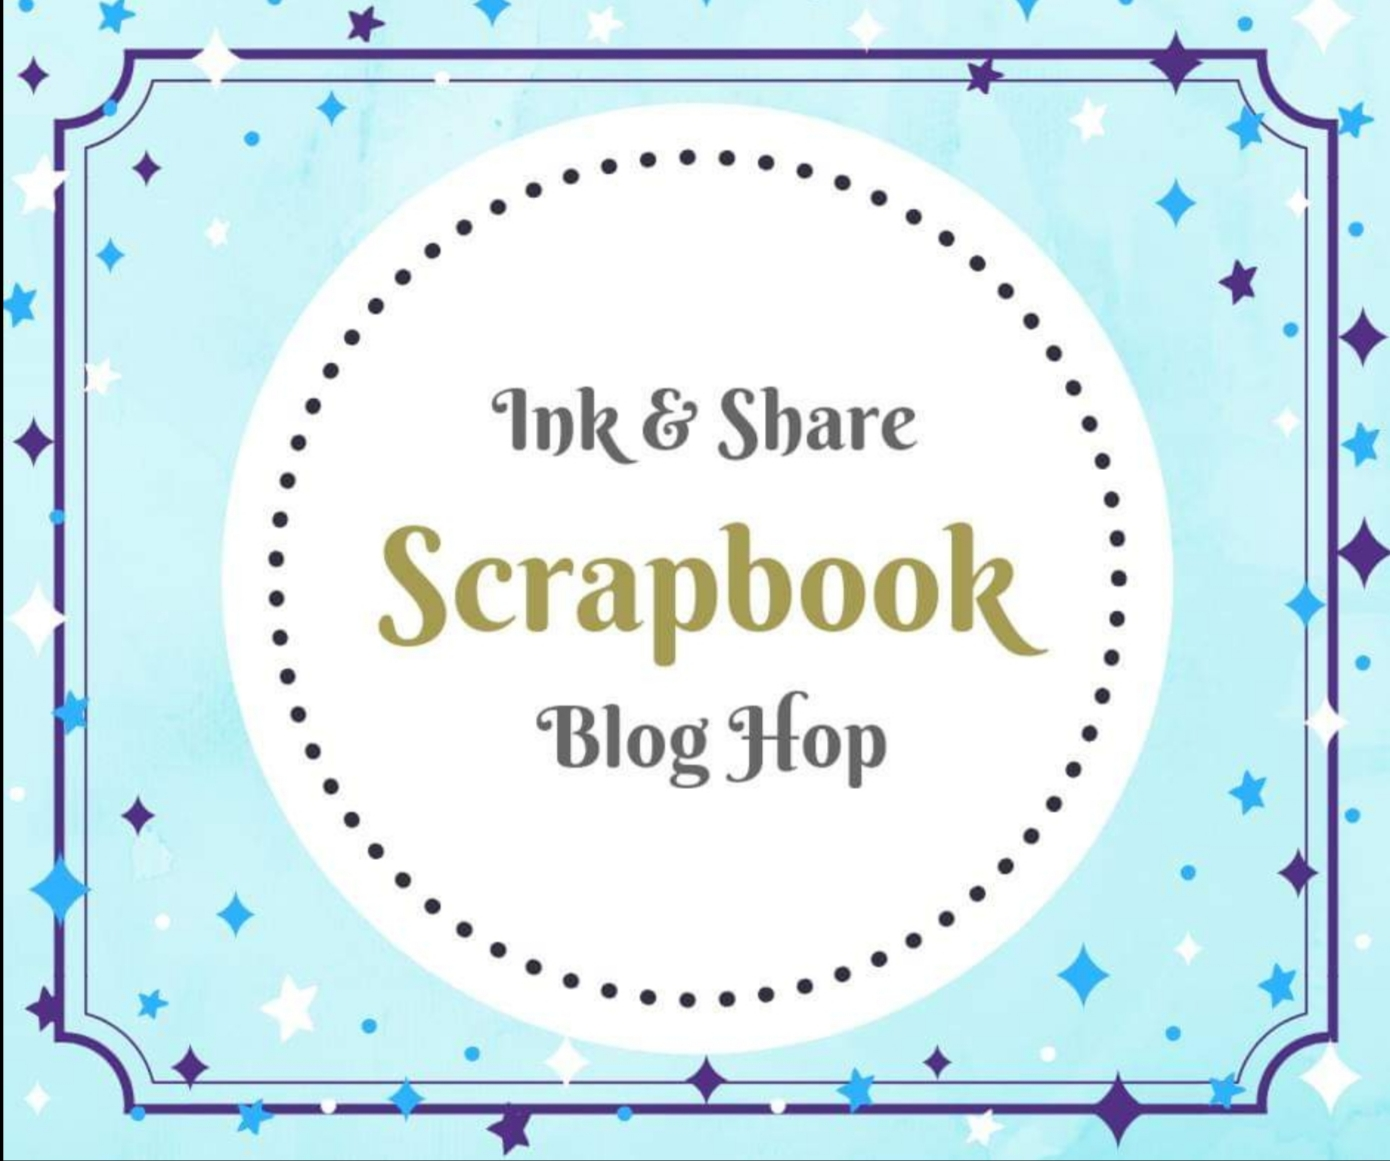 Ink & Share Scrapbook